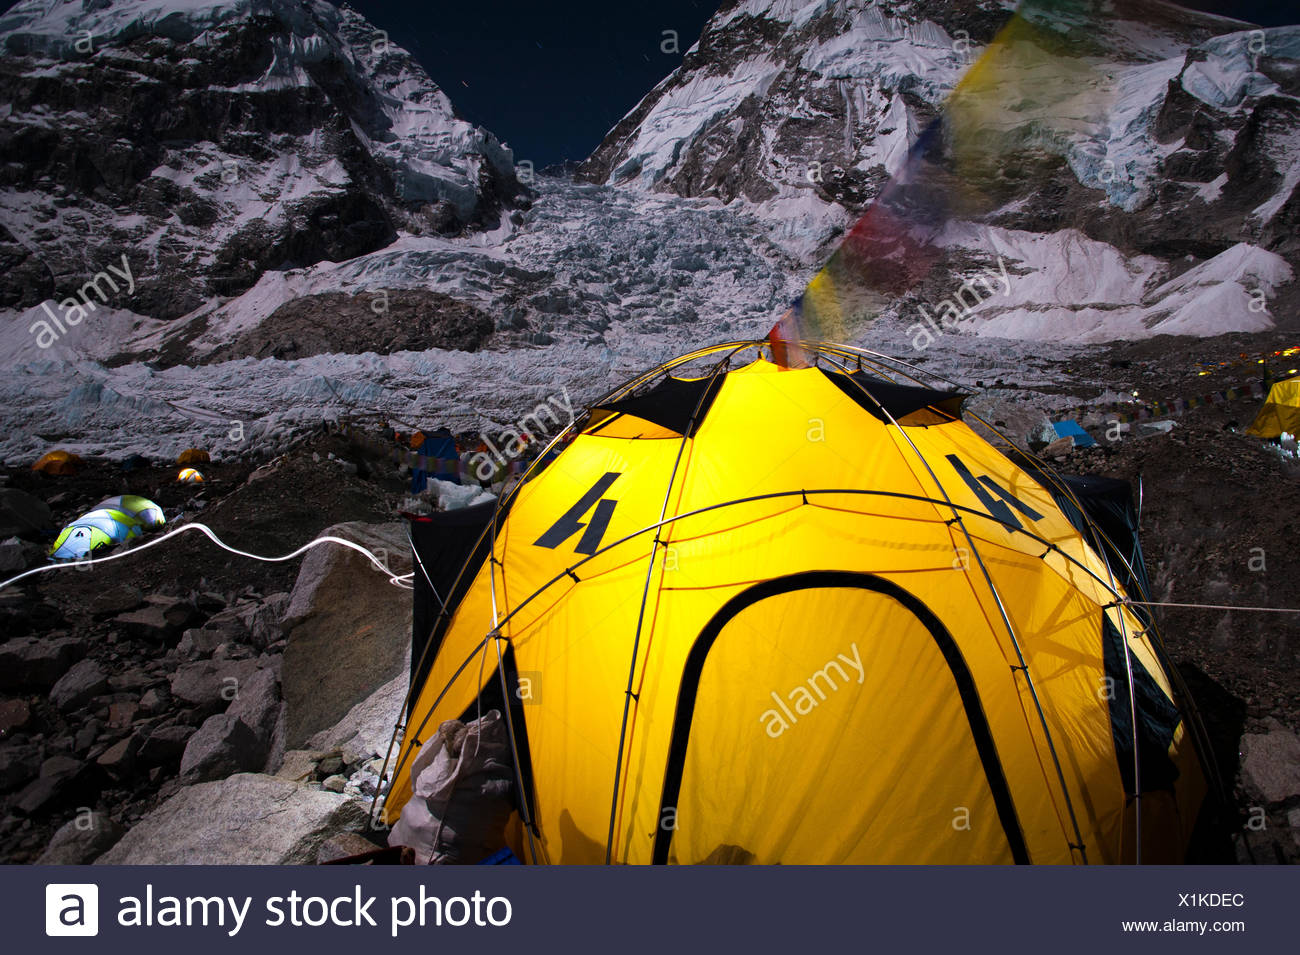 Tent beneath Khumbu Icefall at Mount Everest, Nepal - Stock Image